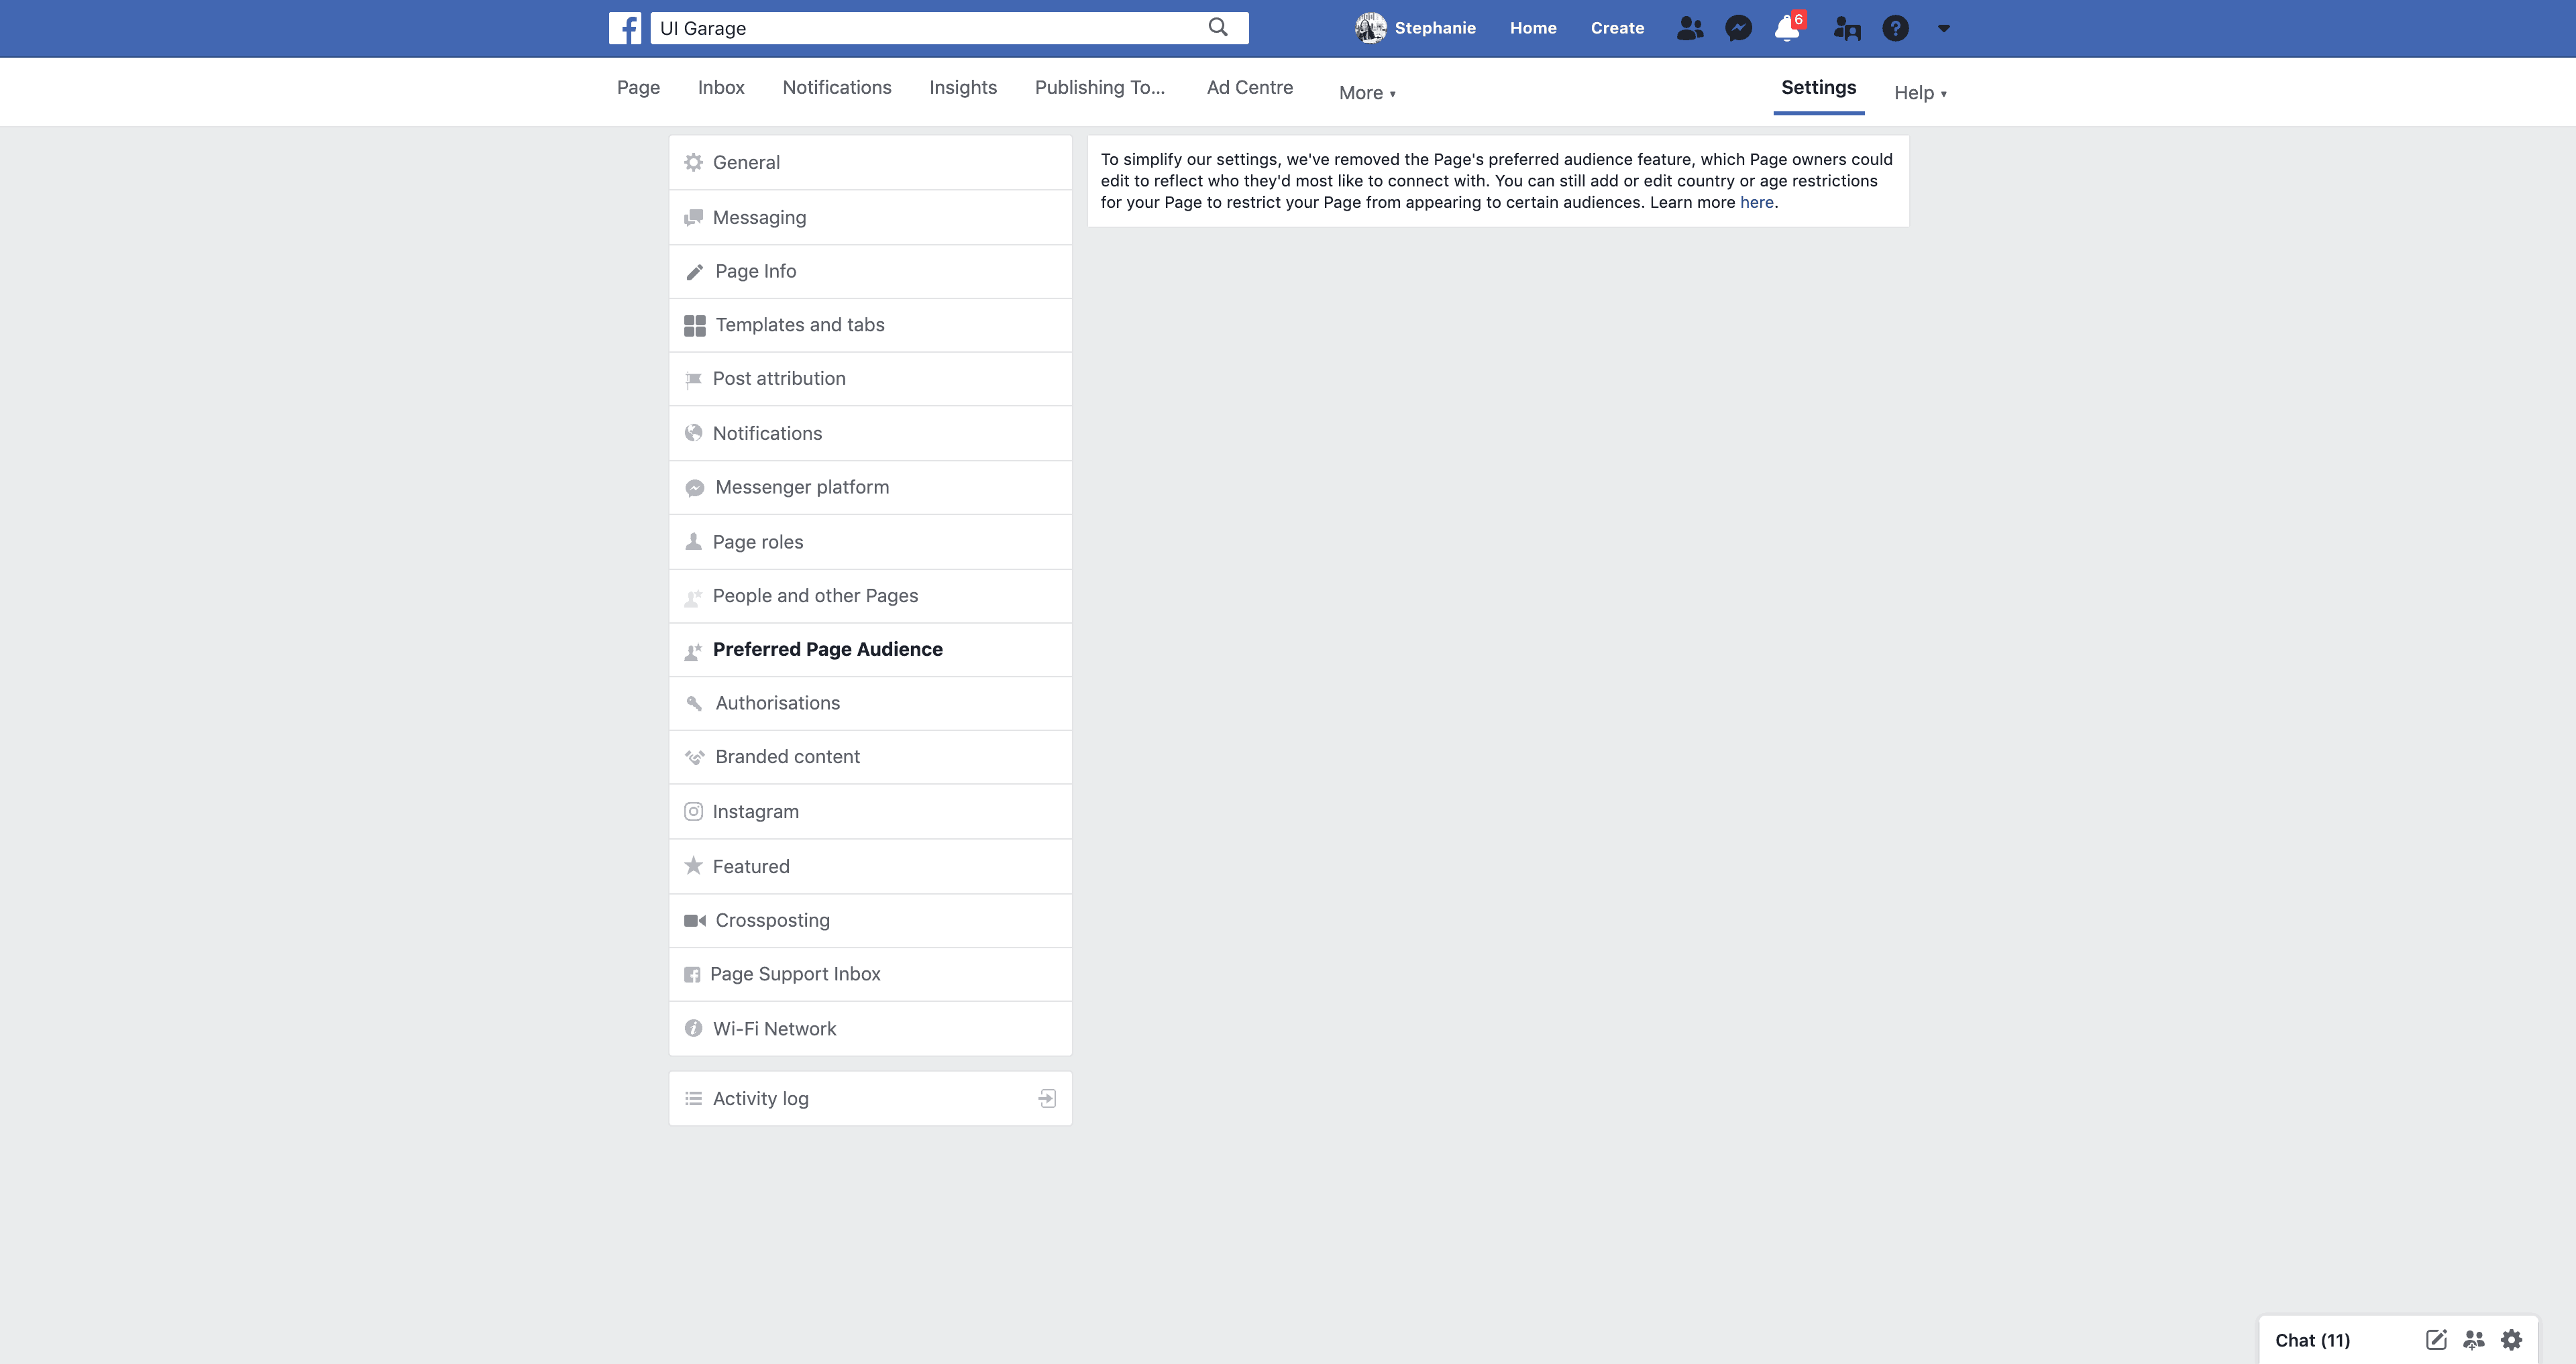 Page's Preferred Page Audience Settings by Facebook